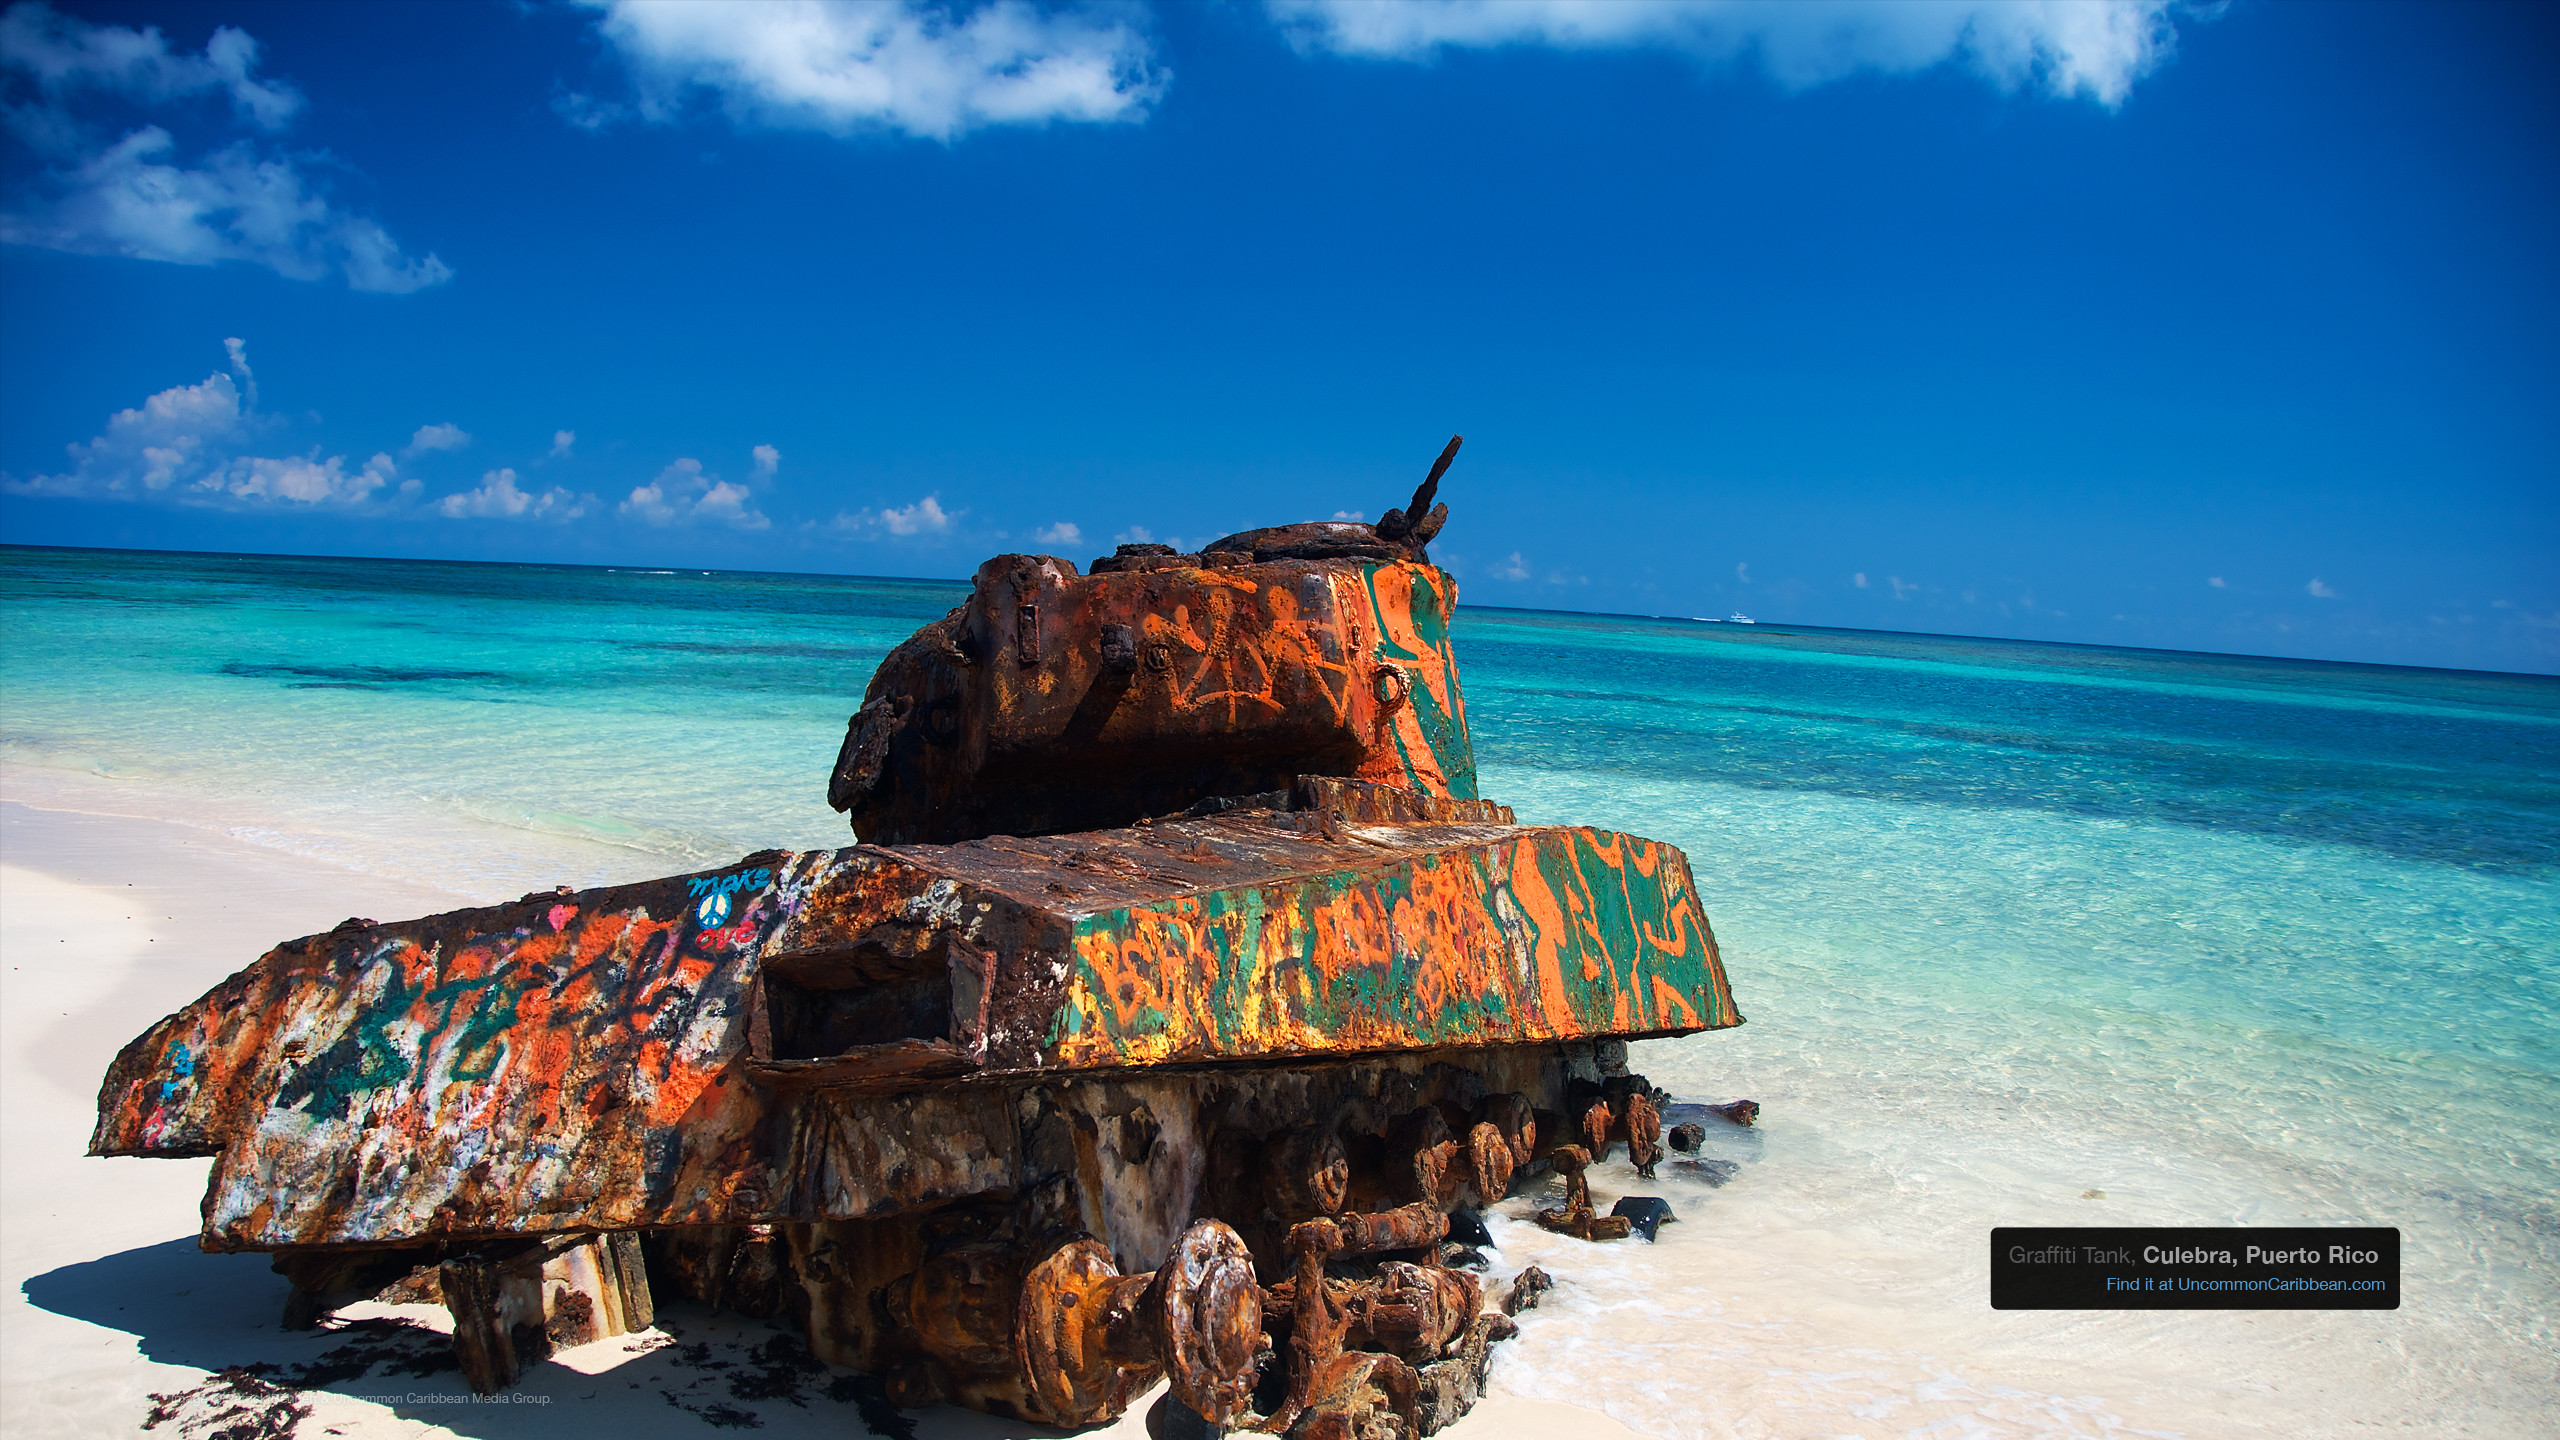 Caribbean Wallpaper Wednesday: Graffiti Tank, Culebra